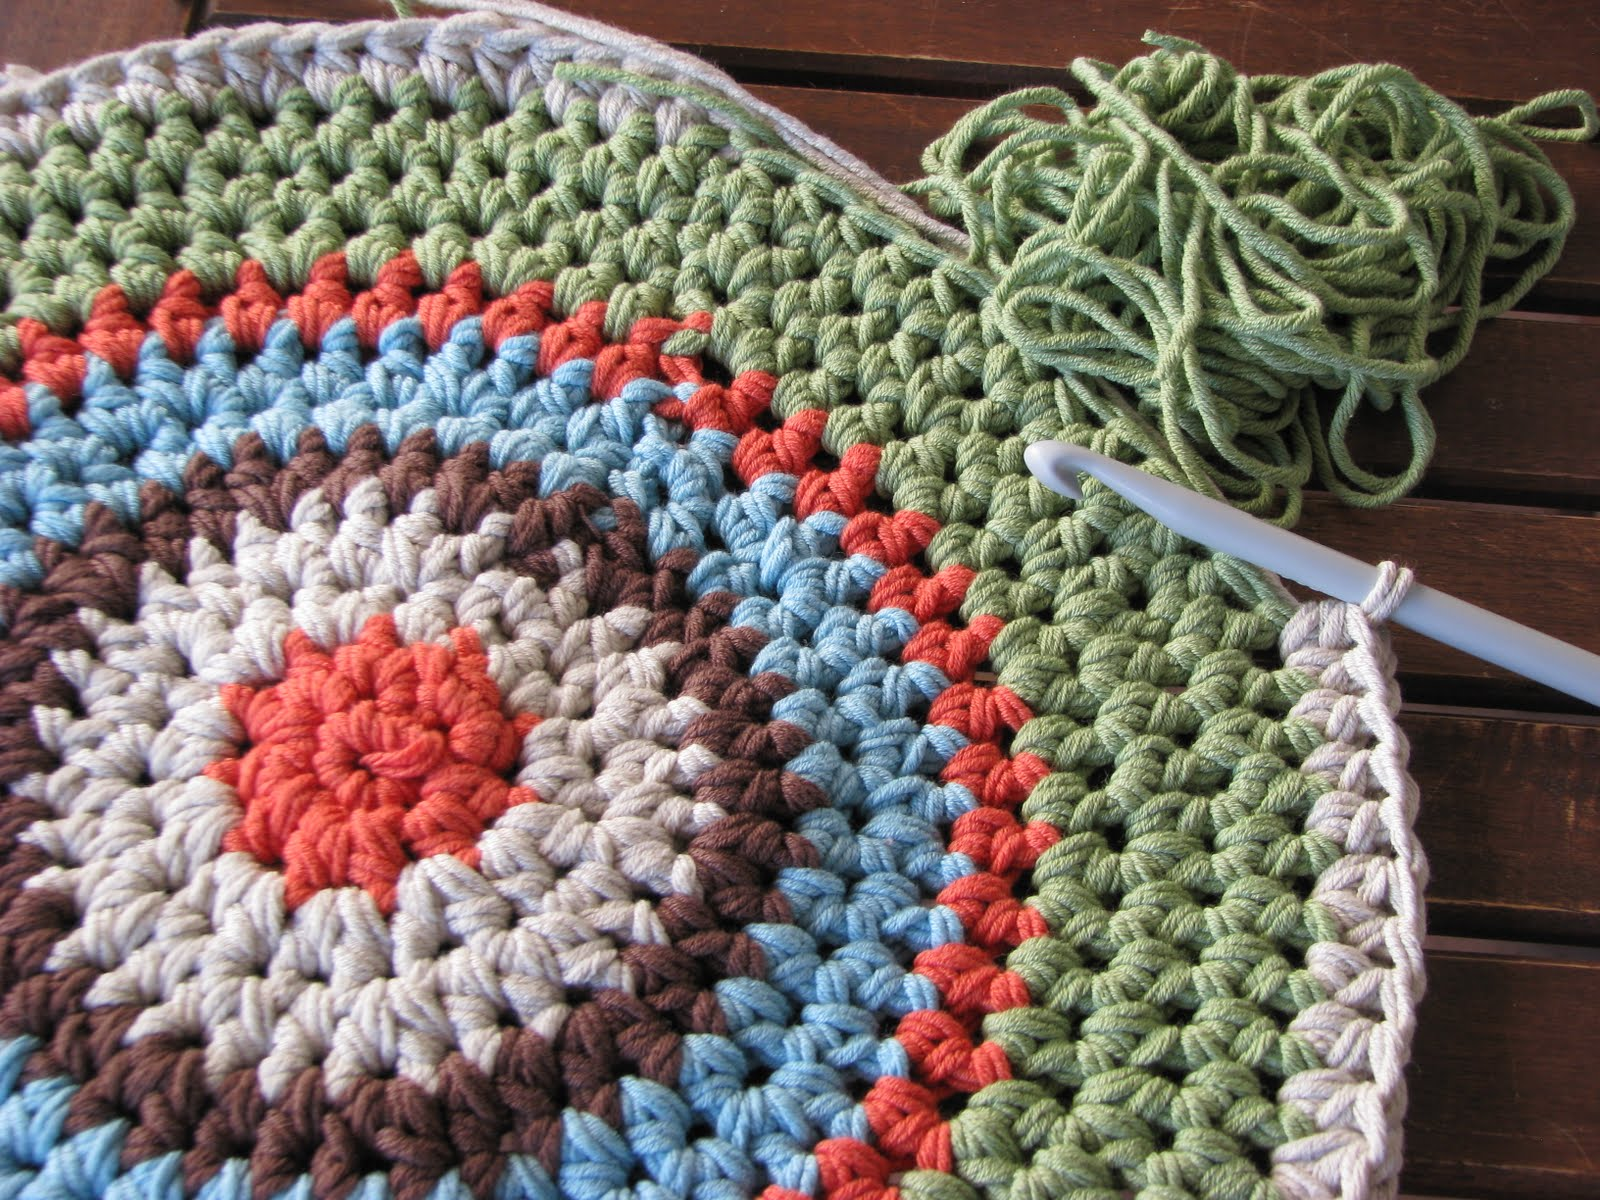 Crocheting A Rug : Crochet Circle Rug Pattern - Bing images